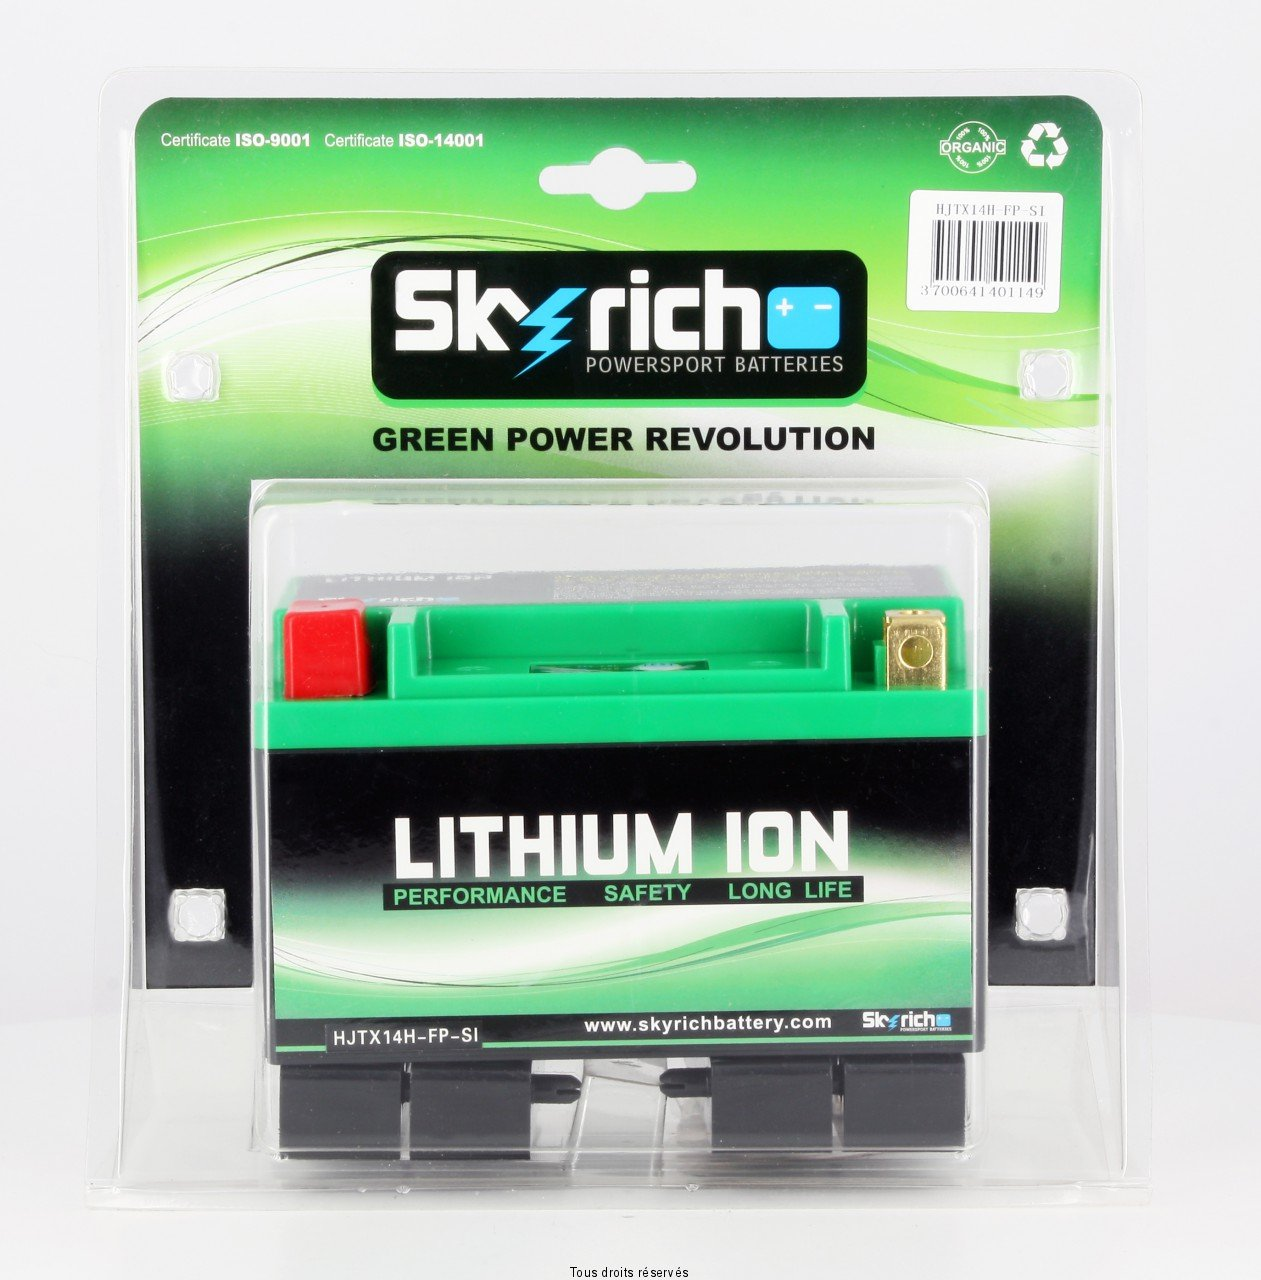 chargeur batterie moto lithium ion skyrich. Black Bedroom Furniture Sets. Home Design Ideas